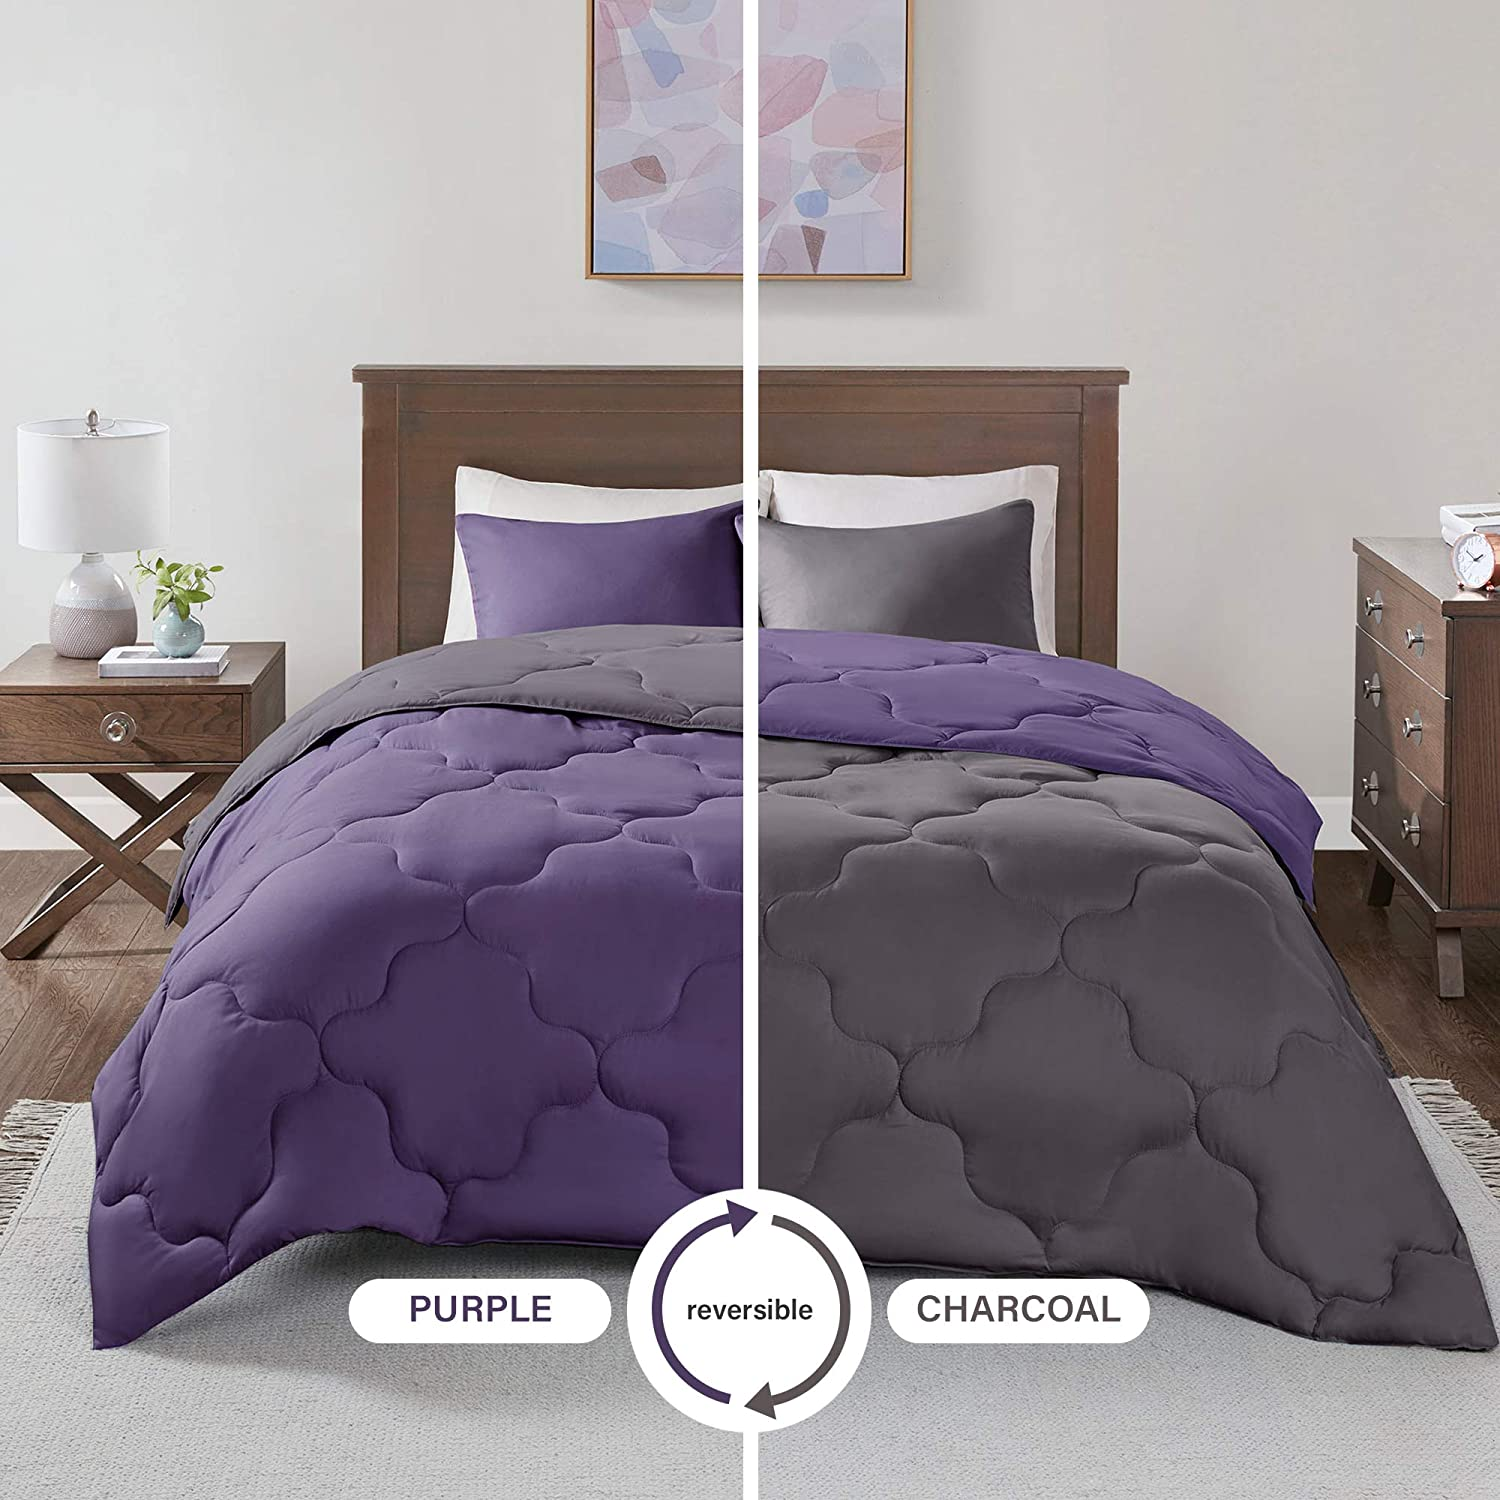 Comfort Spaces Vixie 2 Piece Comforter Set All Season Reversible Goose Down Alternative Stitched Geometrical Pattern Bedding, Twin/Twin XL, Purple/Charcoal